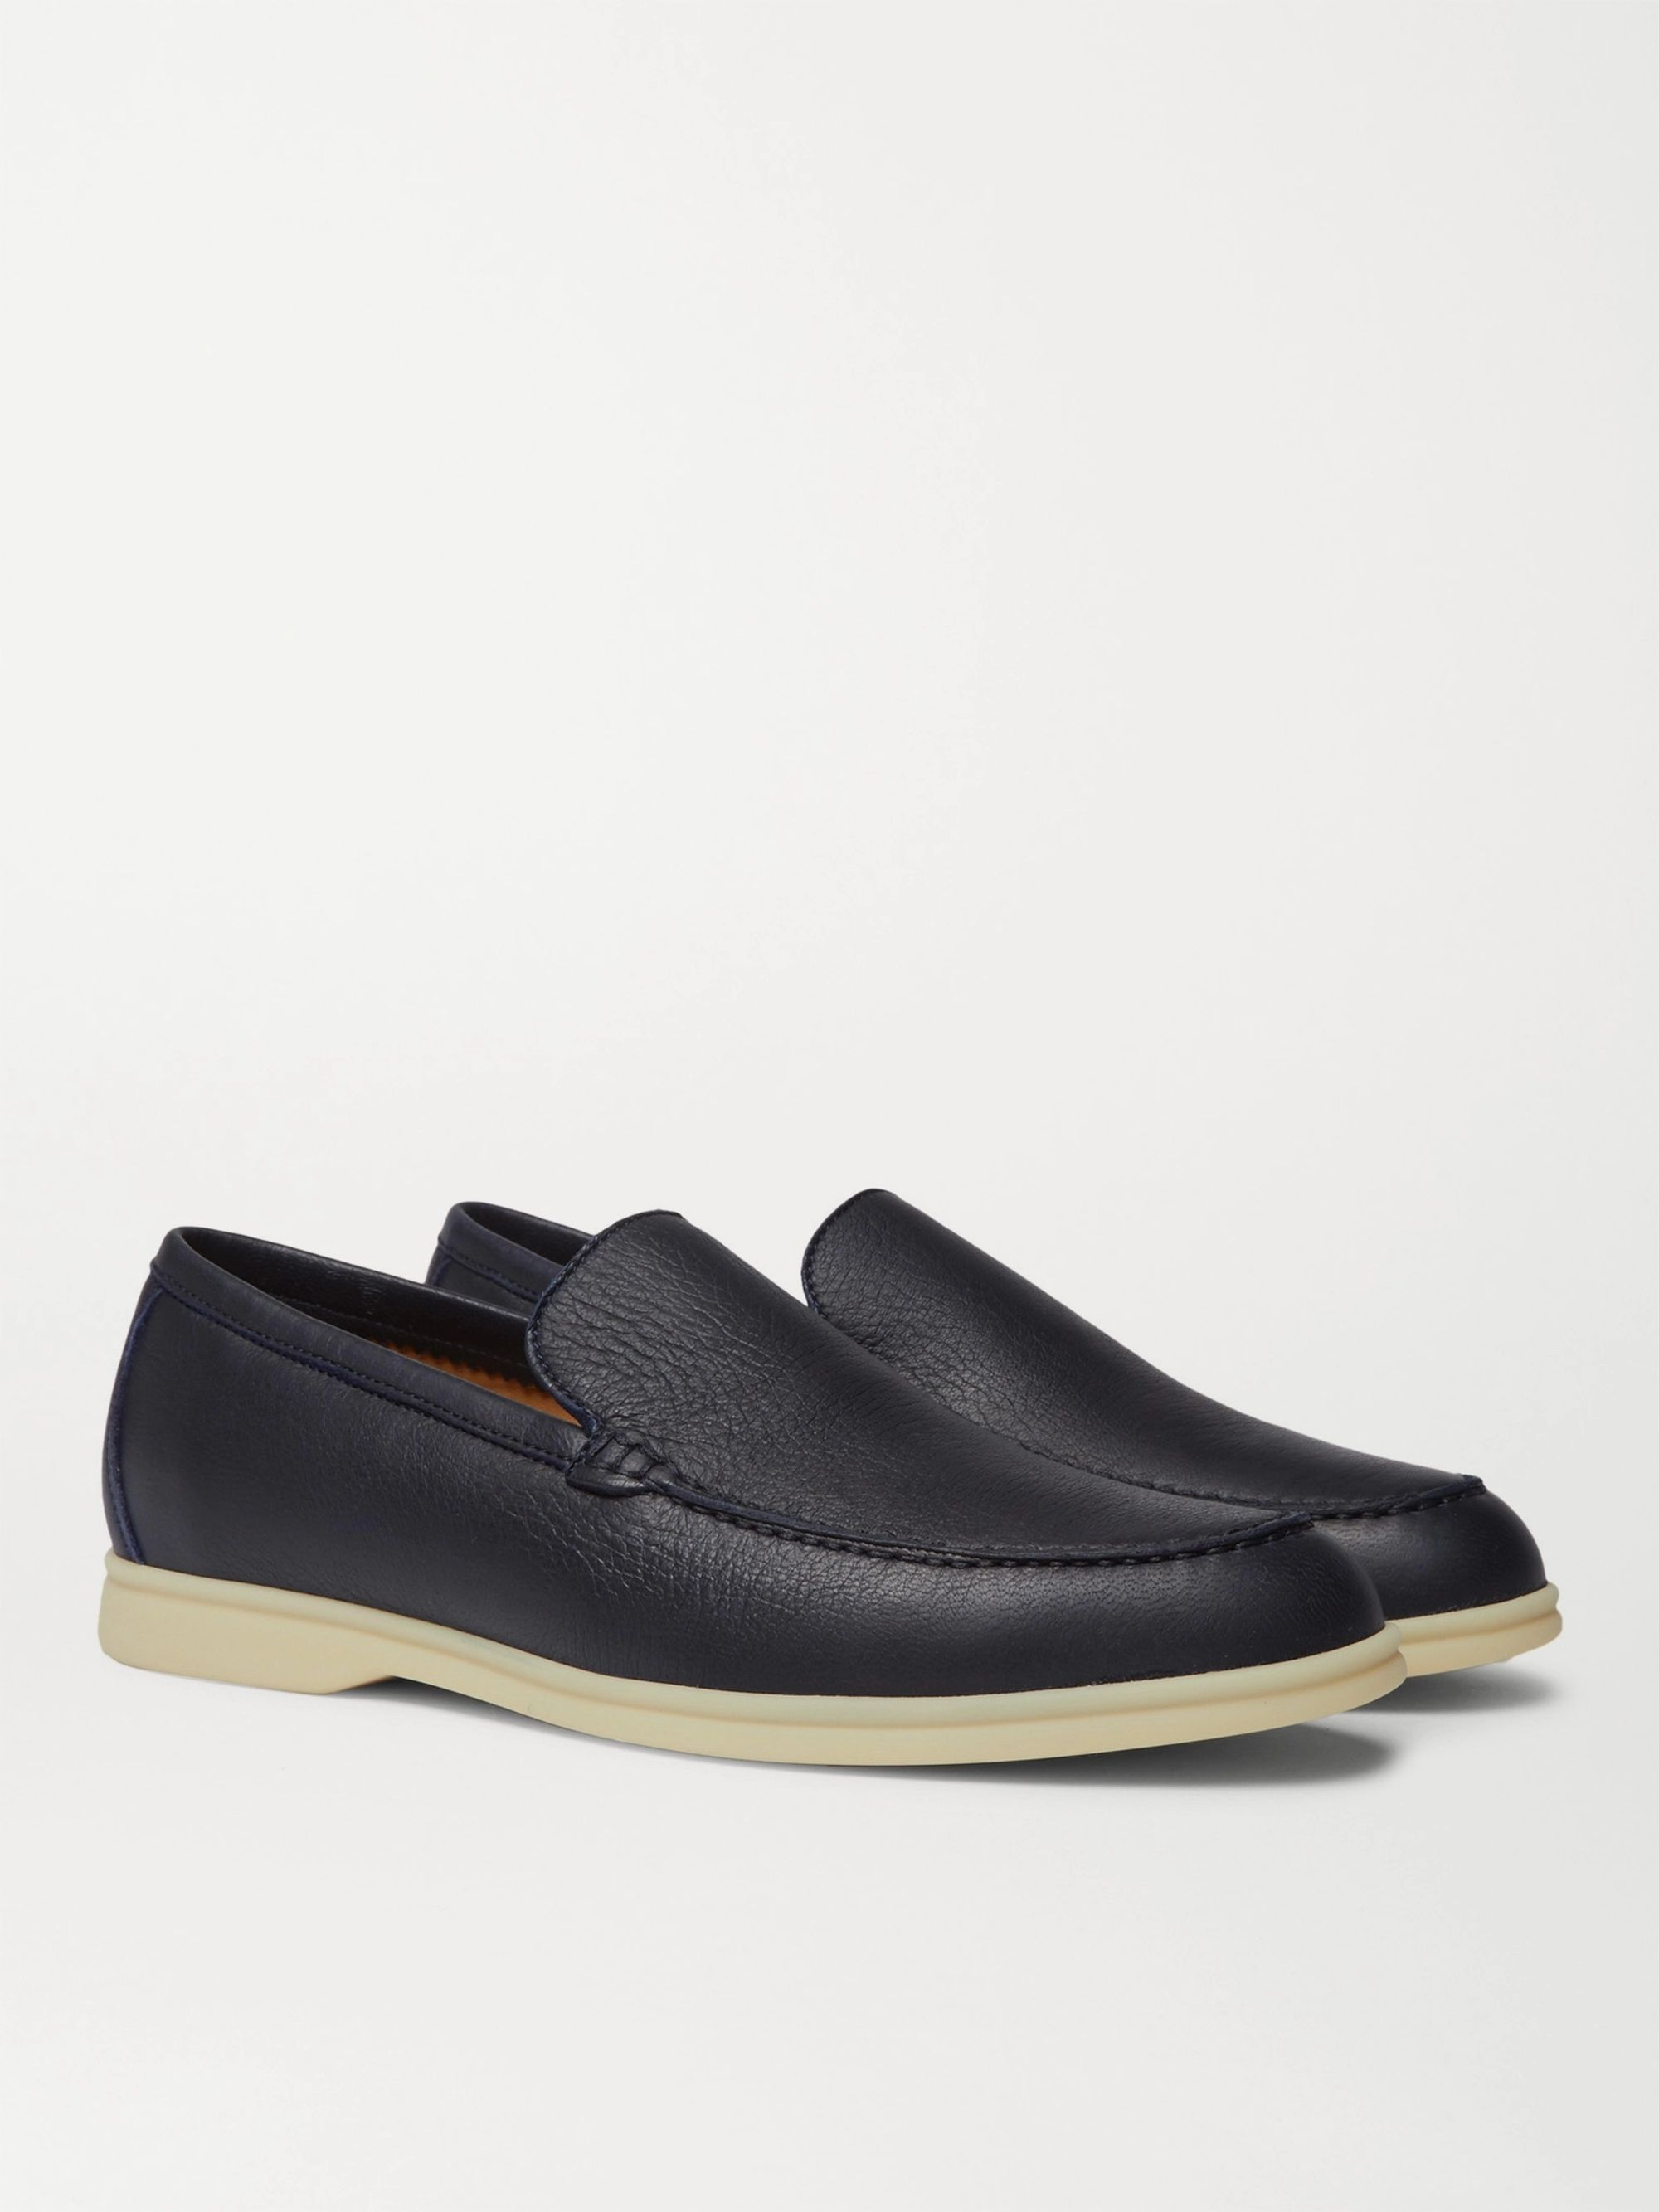 Loro Piana Summer Walk Full-Grain Leather Loafers